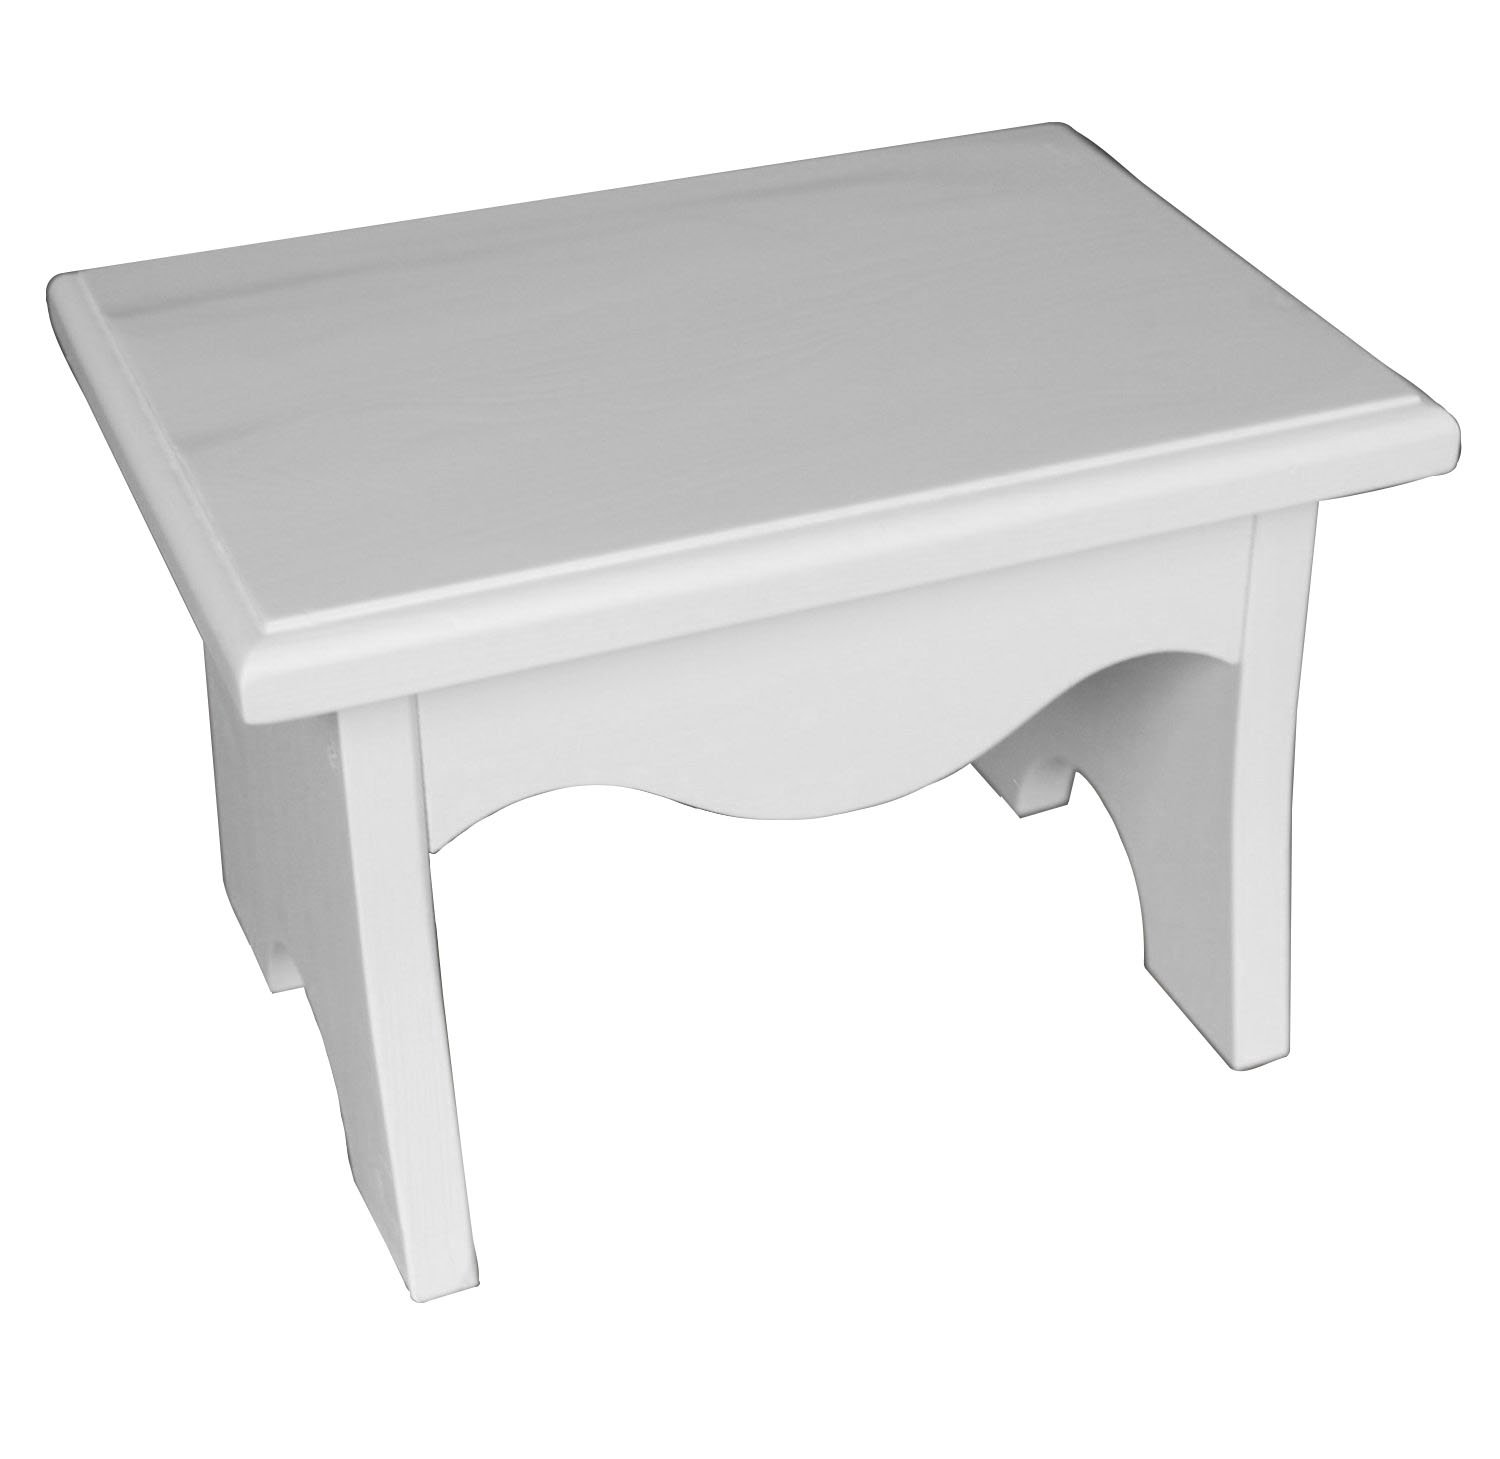 Step Store Stool White For 28 Images 3 Step Wood Step Stool In White Finish Step Store